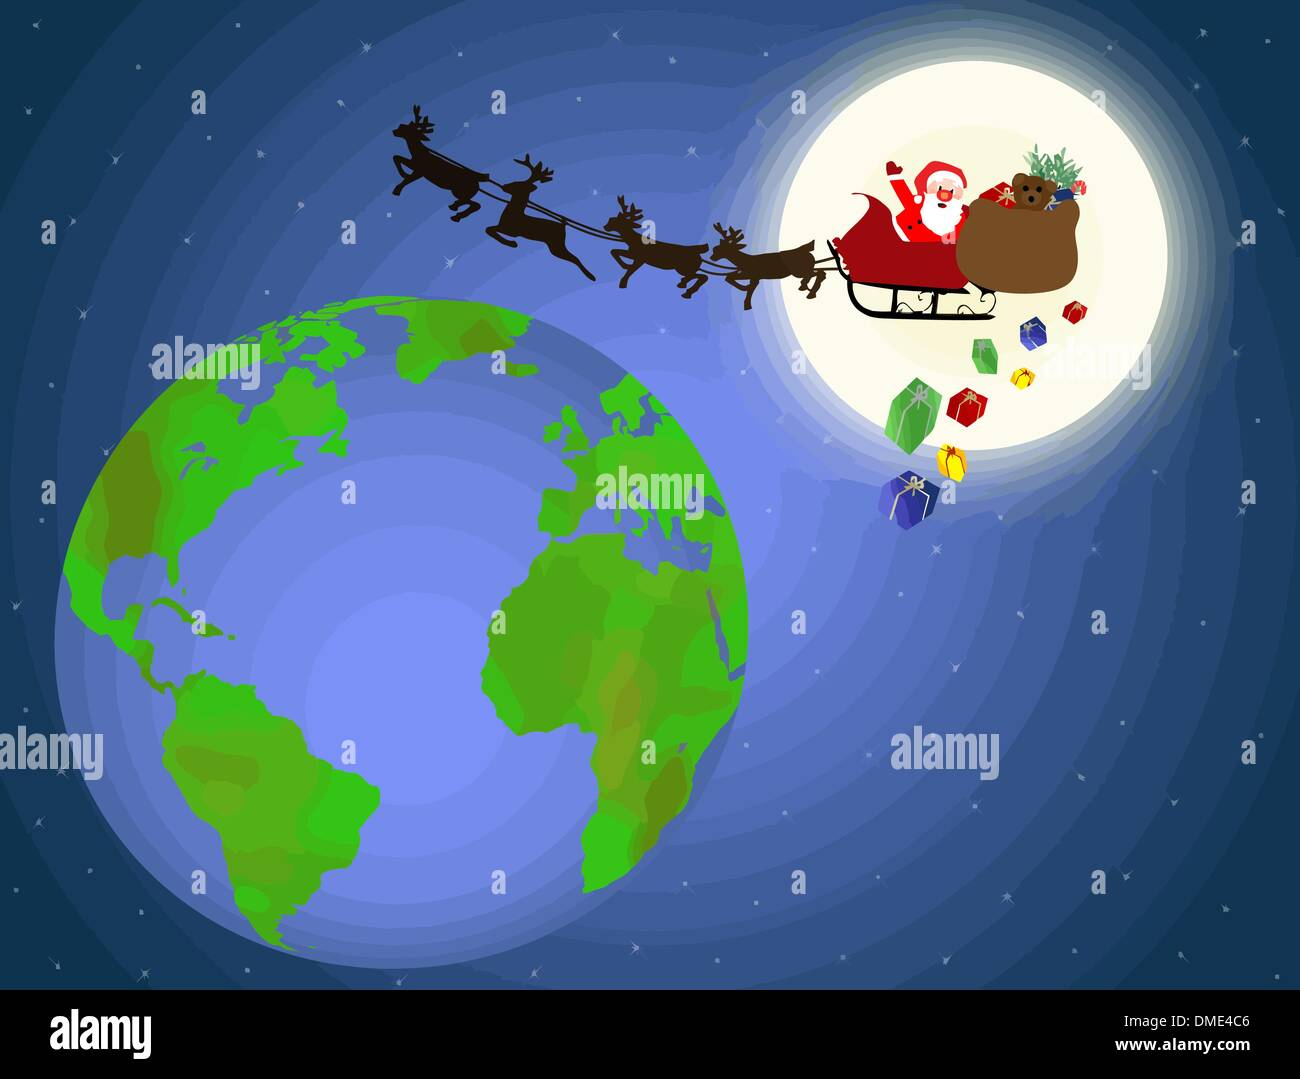 santa sleigh fly stockfotos santa sleigh fly bilder alamy. Black Bedroom Furniture Sets. Home Design Ideas